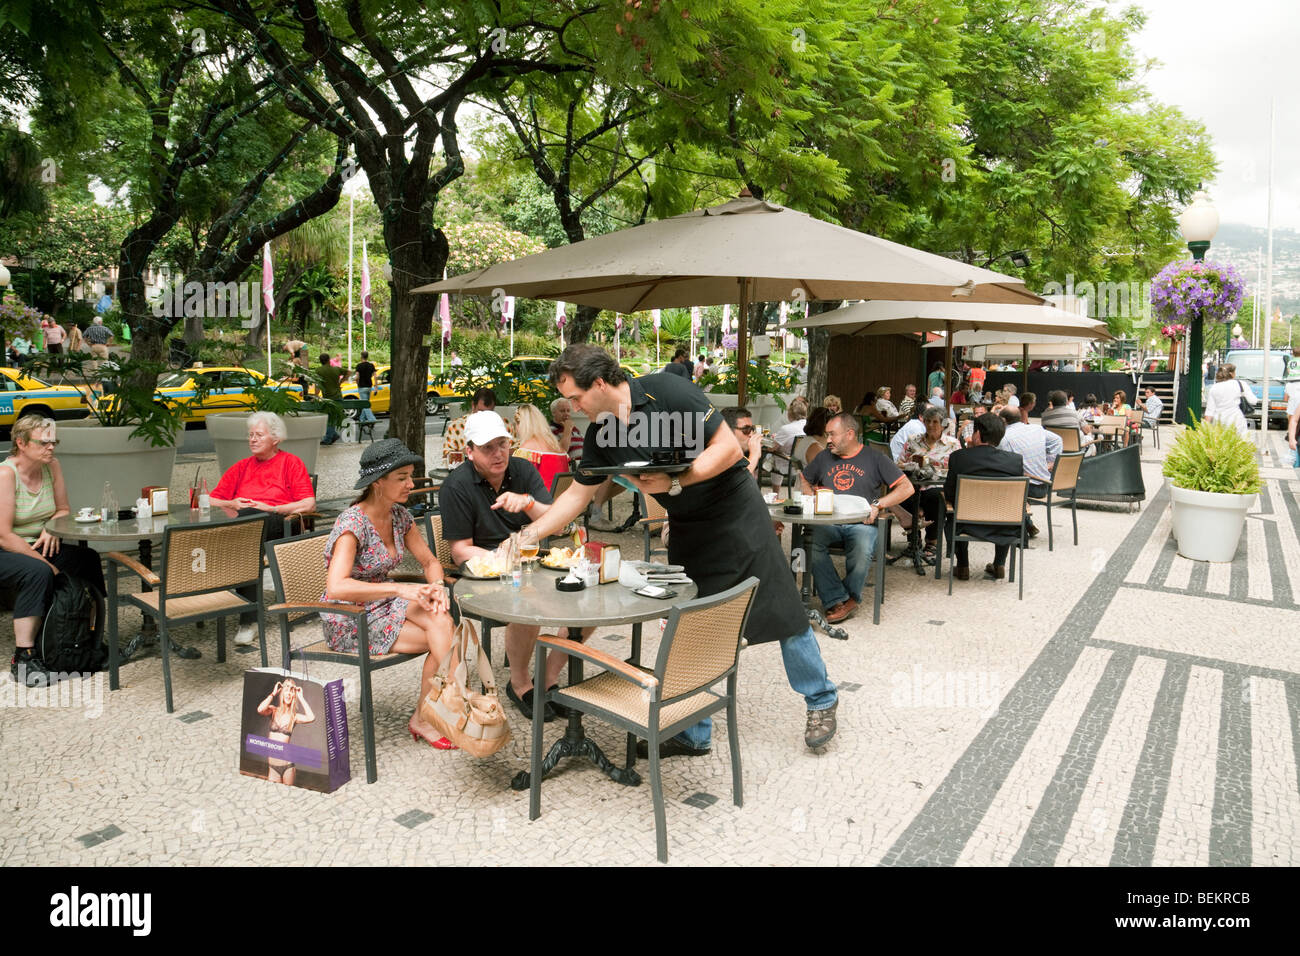 People relaxing in street cafes, Funchal, Madeira - Stock Image